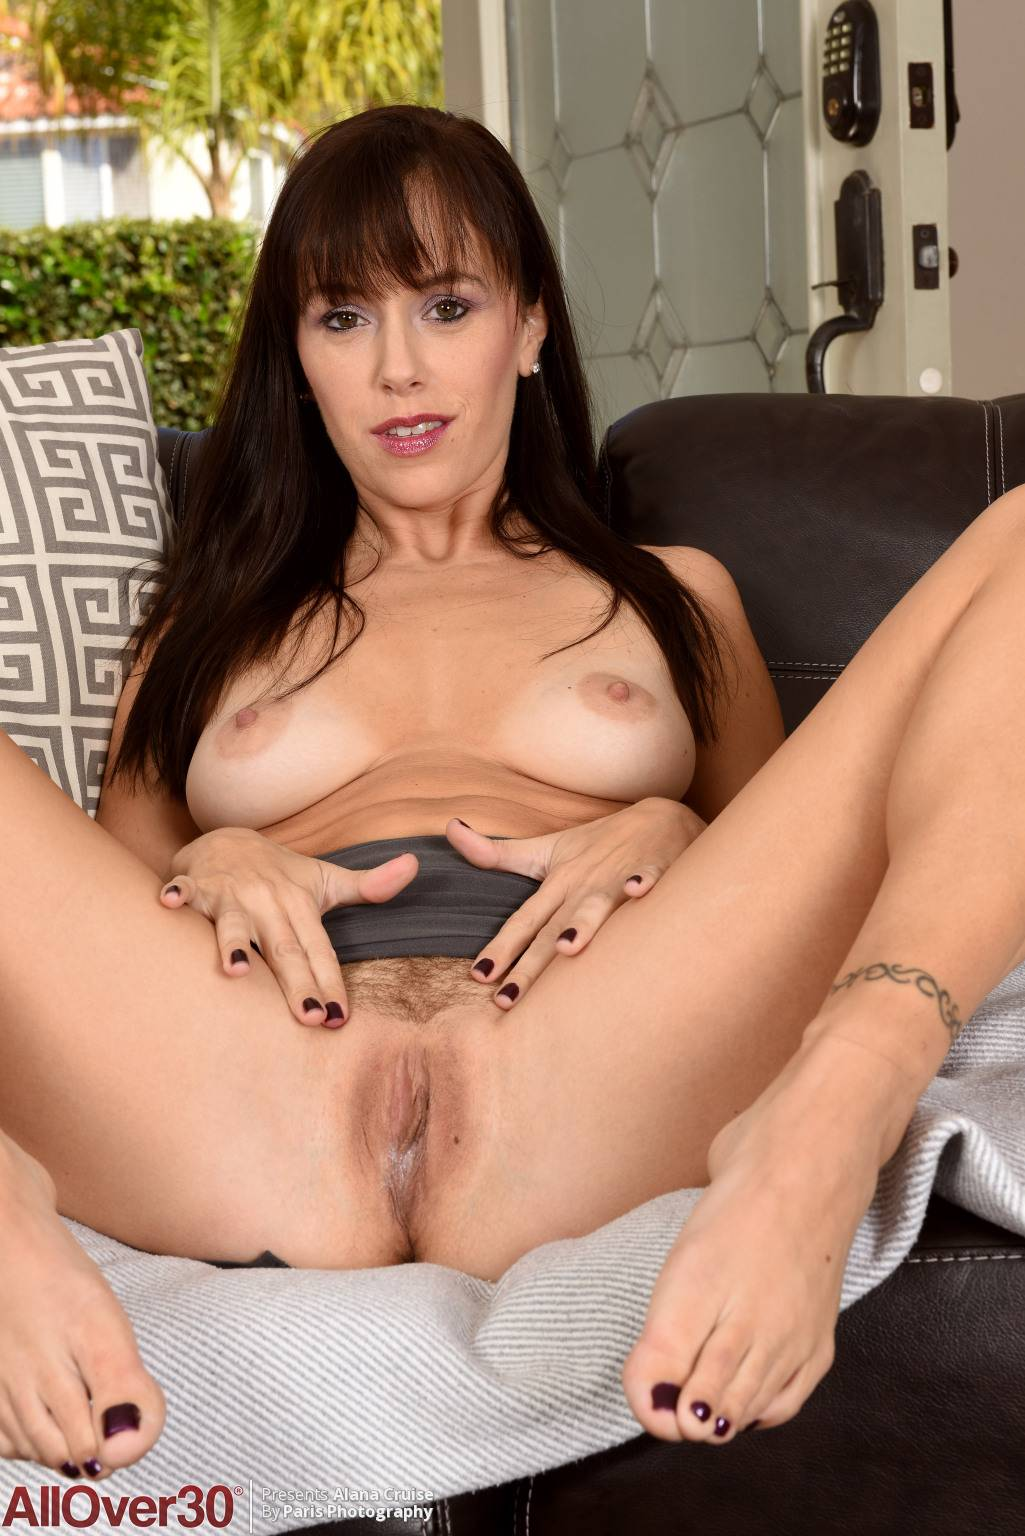 Sexy MILF Alana Cruise playing with her shaved pussy at AllOver30